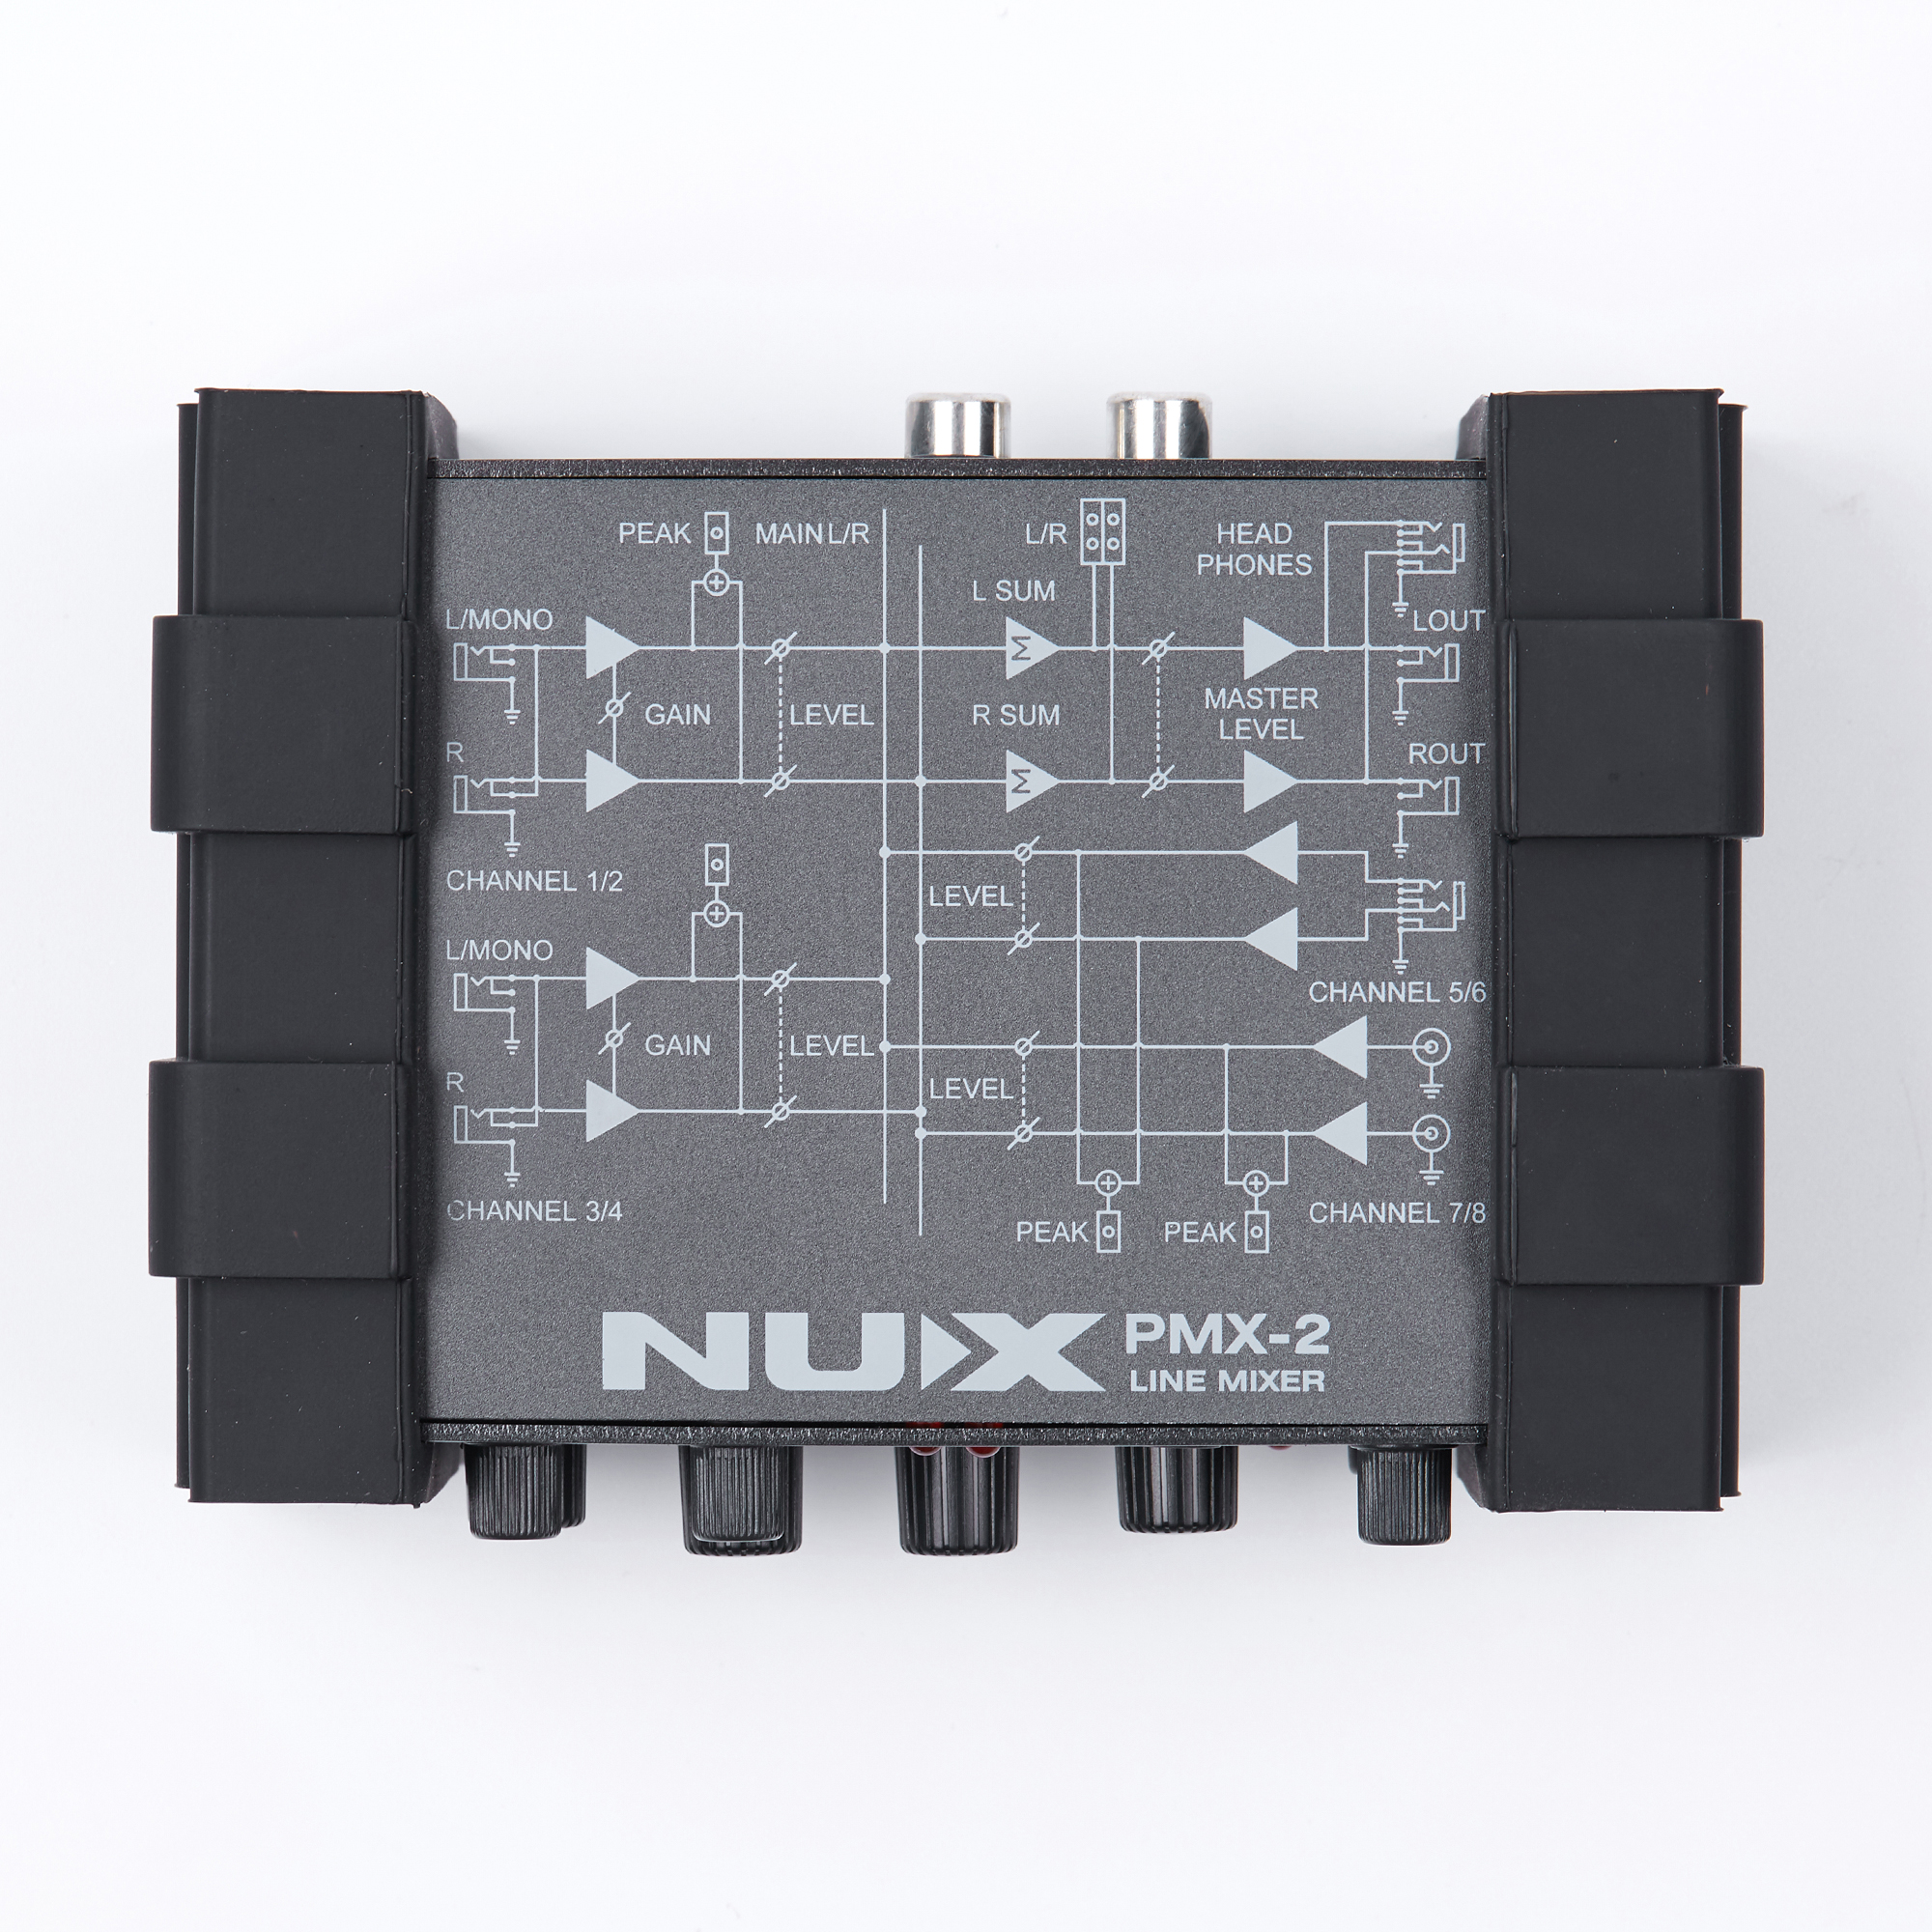 Gain Control 8 Inputs and 2 Outputs NUX PMX-2 Multi-Channel Mini Mixer 30 Musical Instruments Accessories for Guitar Bass Player люстра mw light 317011708